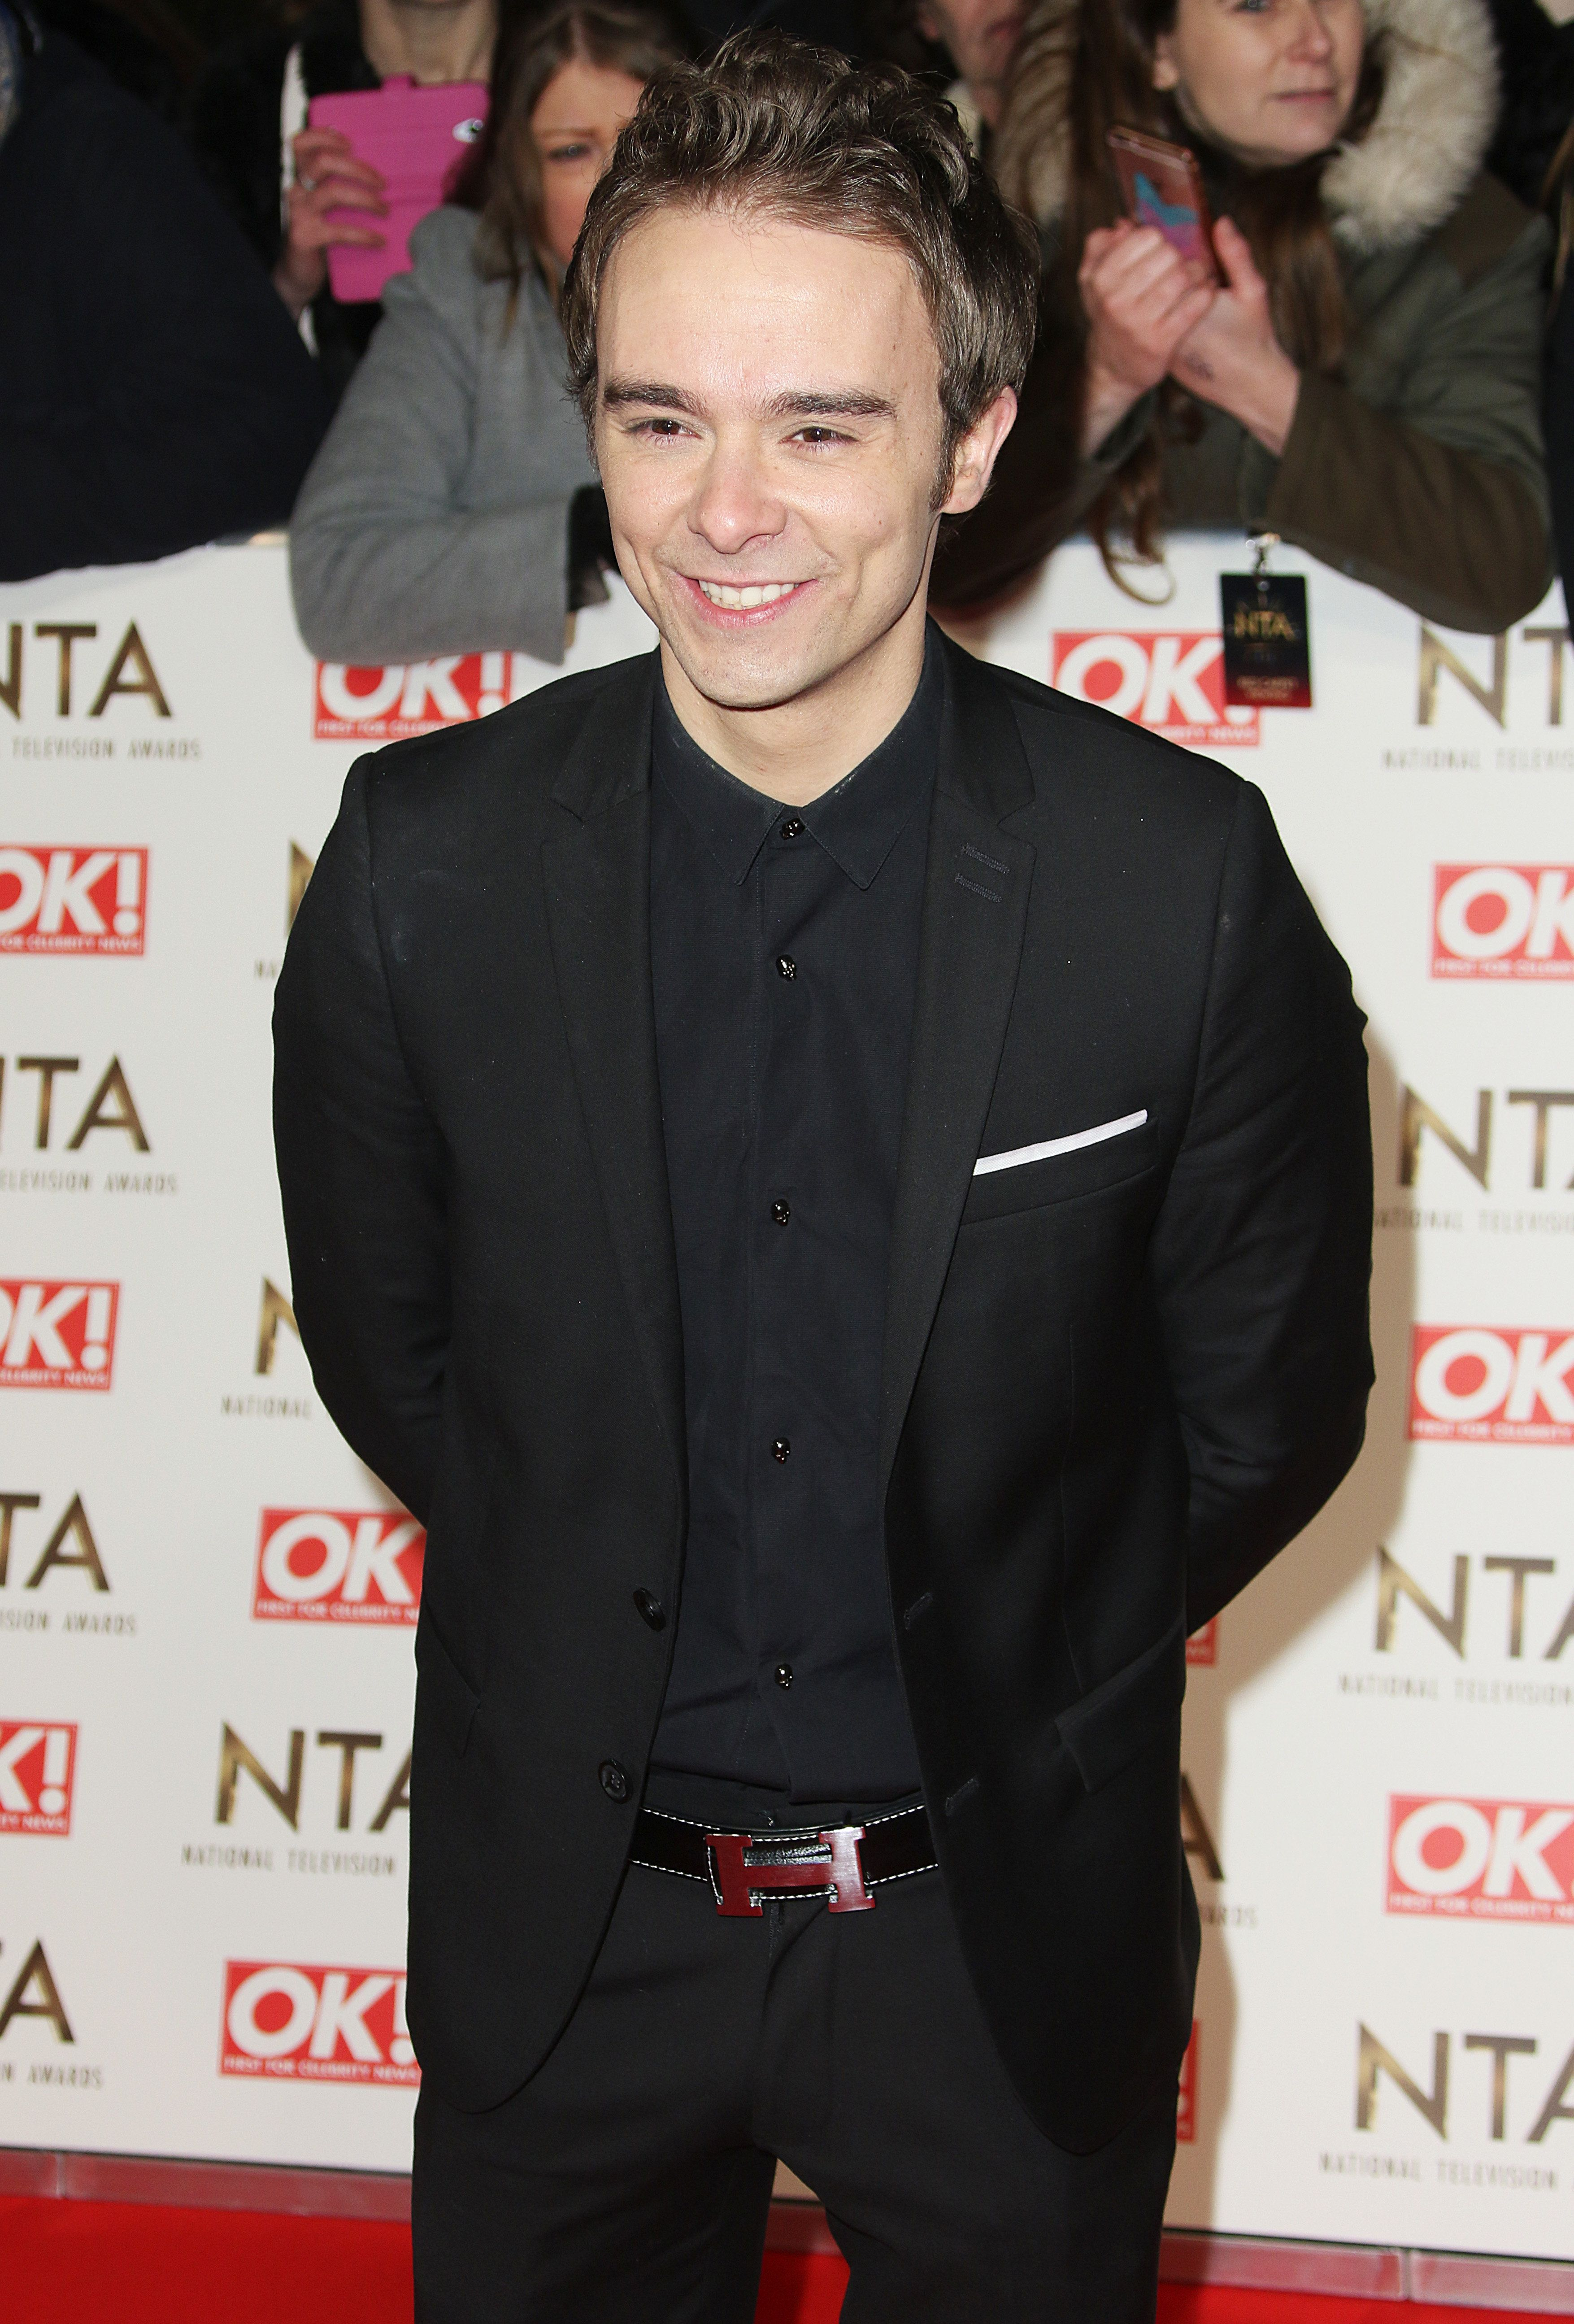 Jack is currently nominated for a British Soap